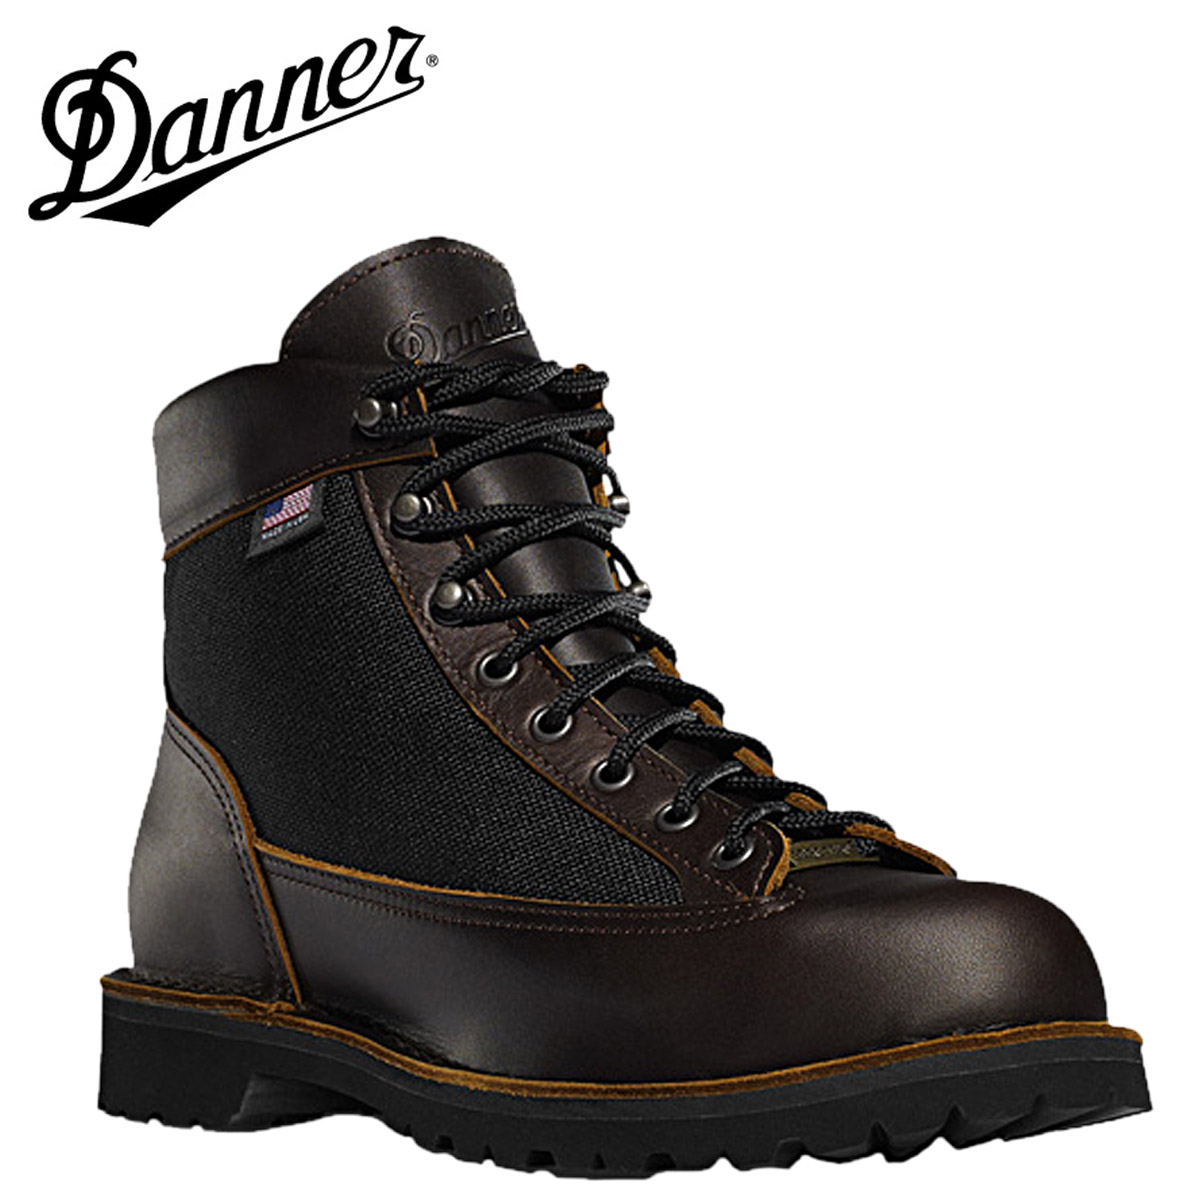 2fc8d4f94b9 Danner Danner Danner light Woodlawn [Dark Brown] DANNER LIGHT WOODLAWN EE  wise leather x mesh mens MADE IN USA 30447 [5 / 14 Add in stock] [normal],  ...